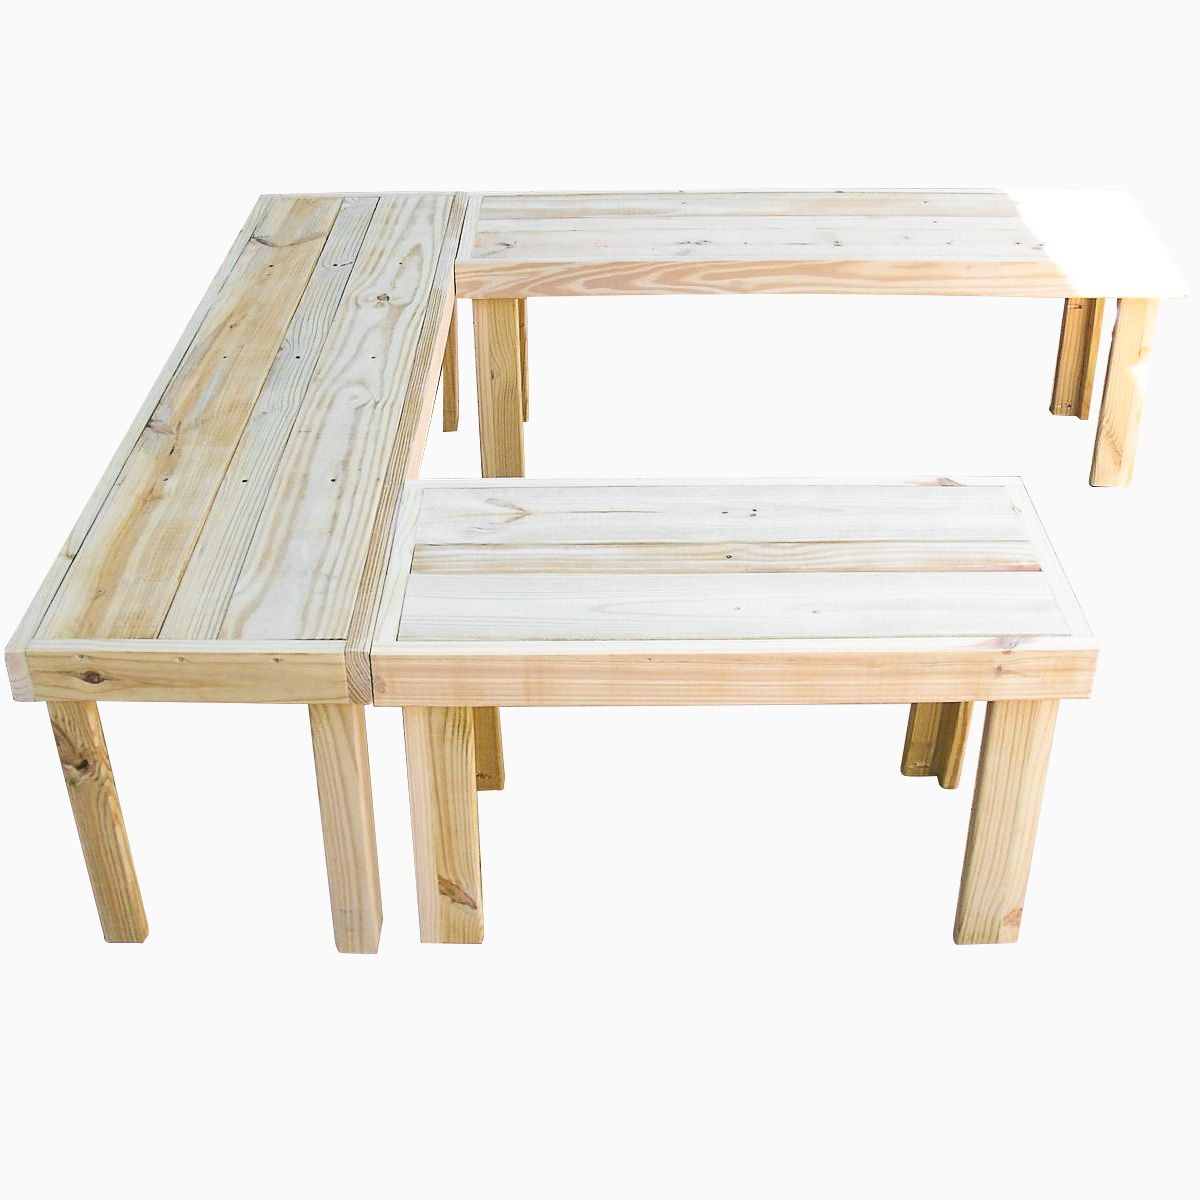 Buy Hand Made U Shaped Handmade Benches Made To Order From The Stockton Mill